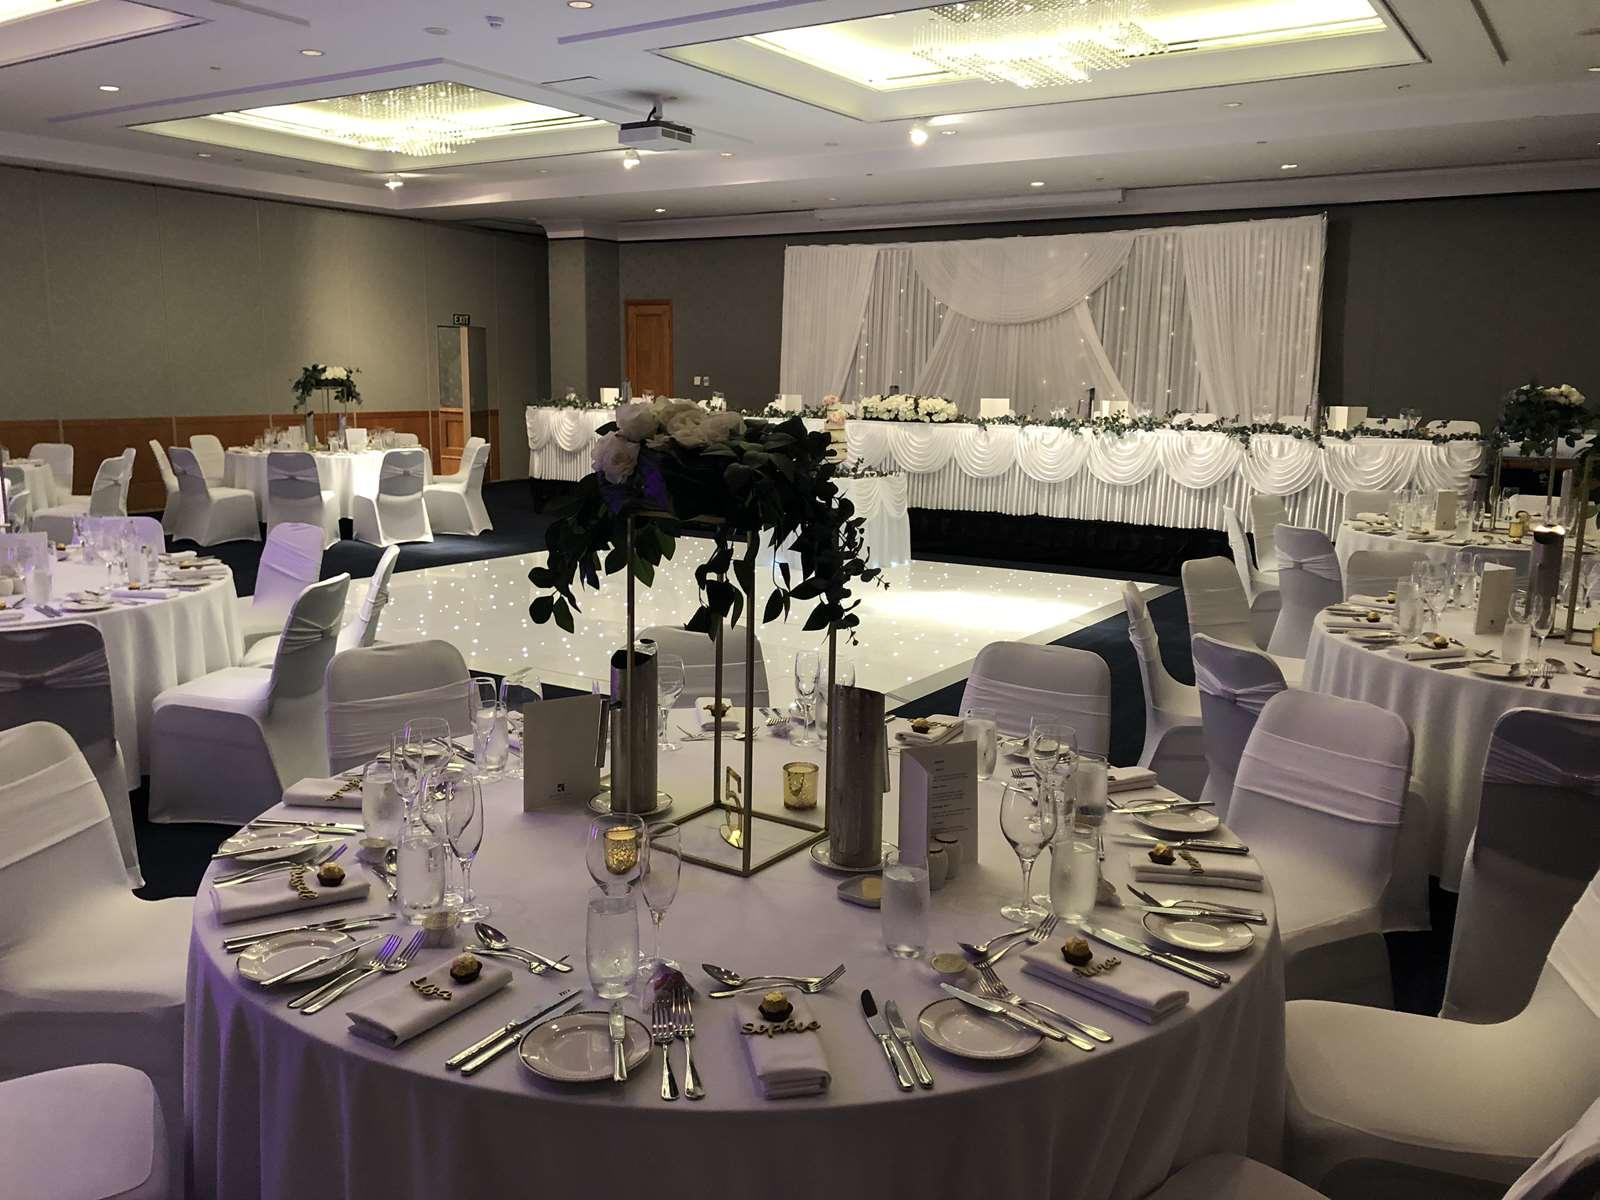 Wedding Venues in Perth CBD | Duxton Hotel Perth